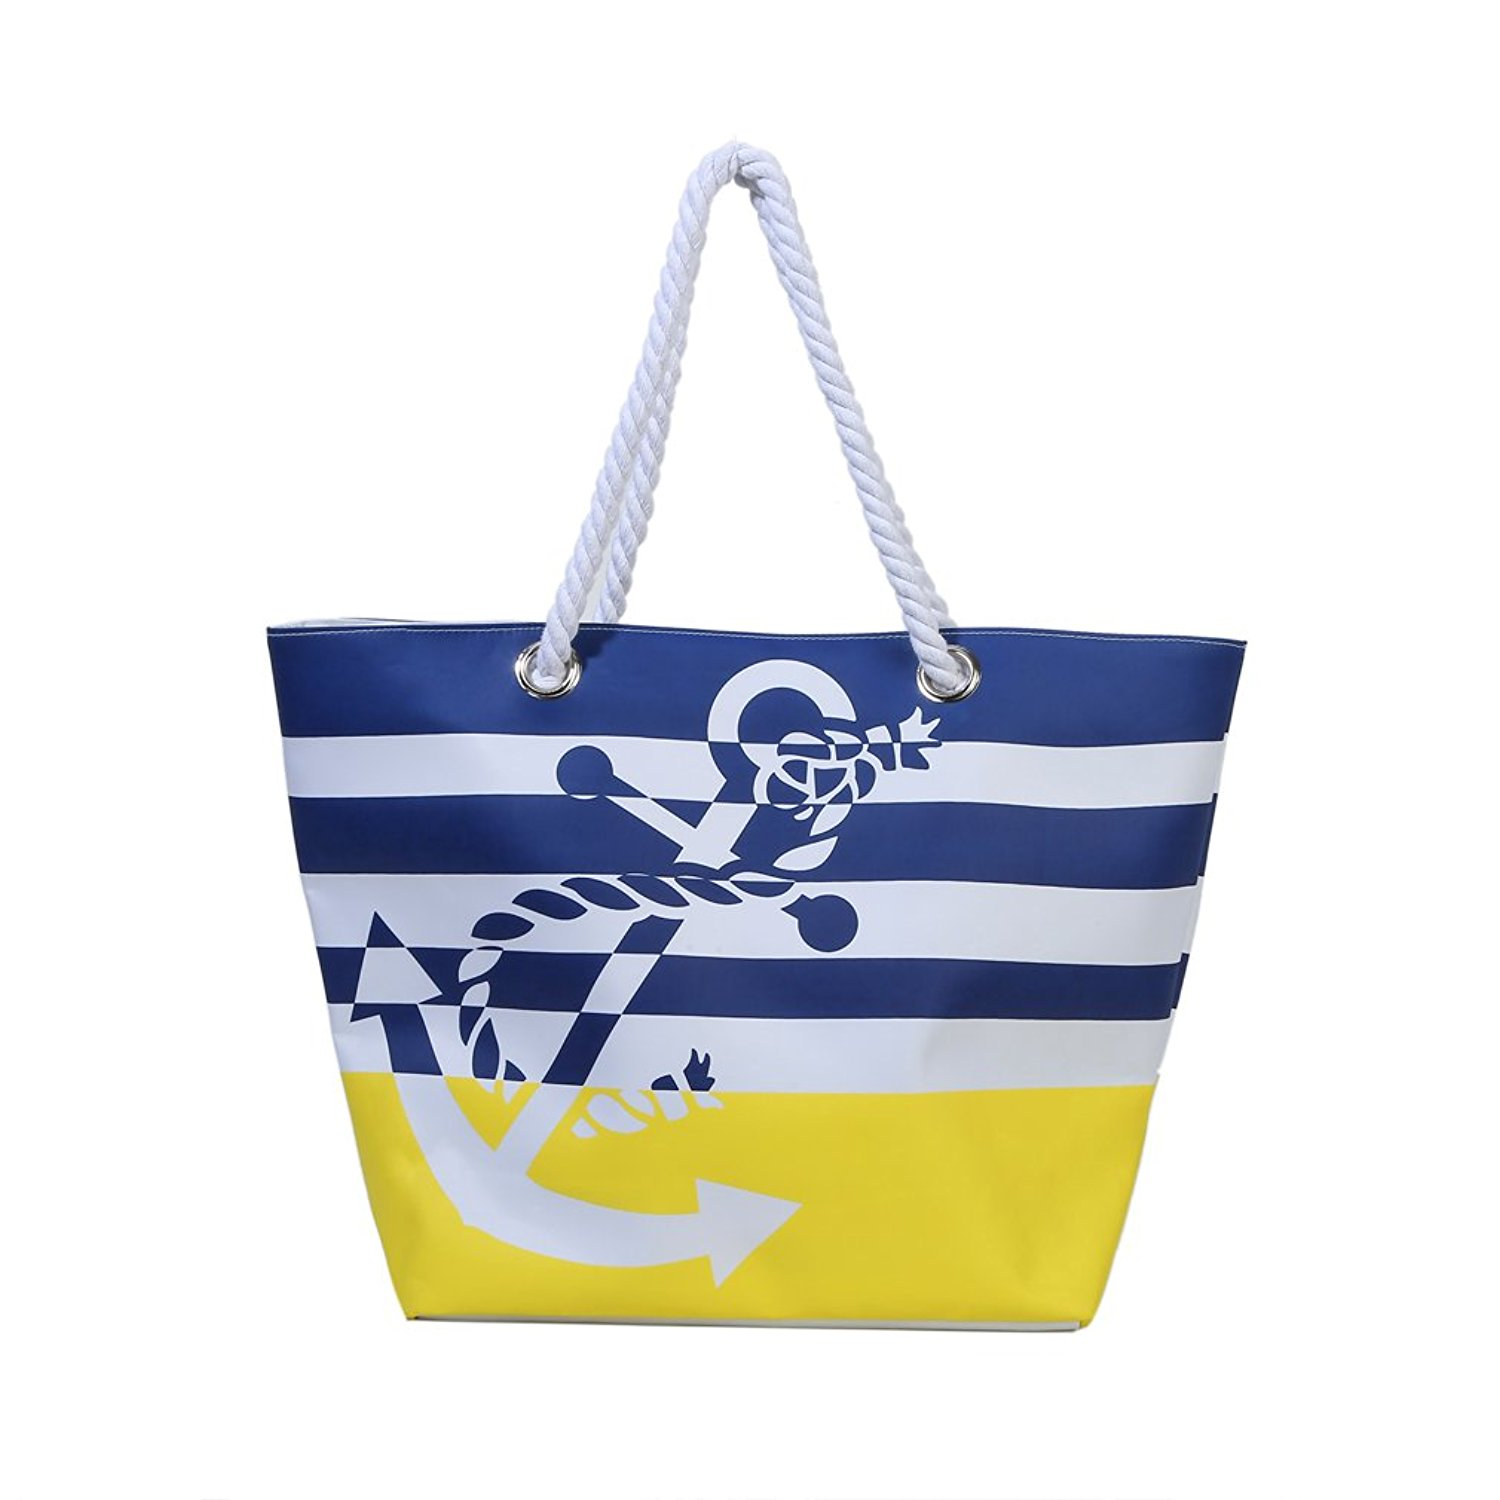 d25b0de8d063 Get Quotations · Waterproof Beach Bag Extra Large Summer Tote Bag With  Cotton Rope Handles for Sands Swimming Pools